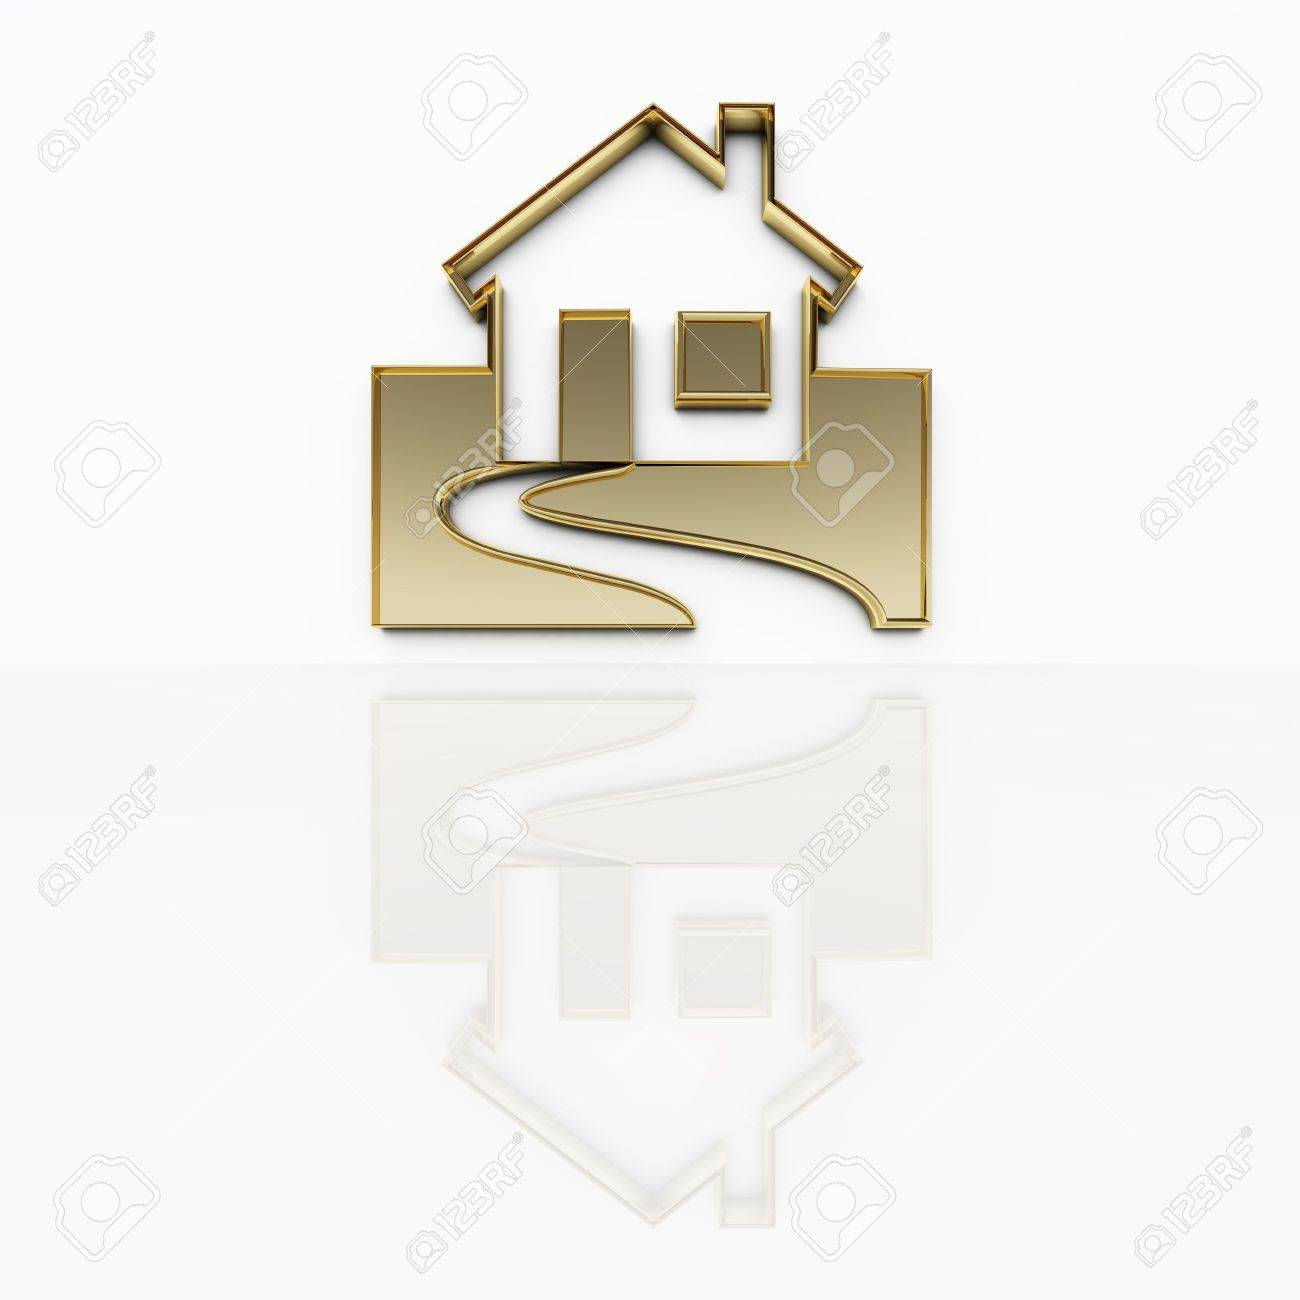 An illustration of a house in gold Stock Photo - 5100154